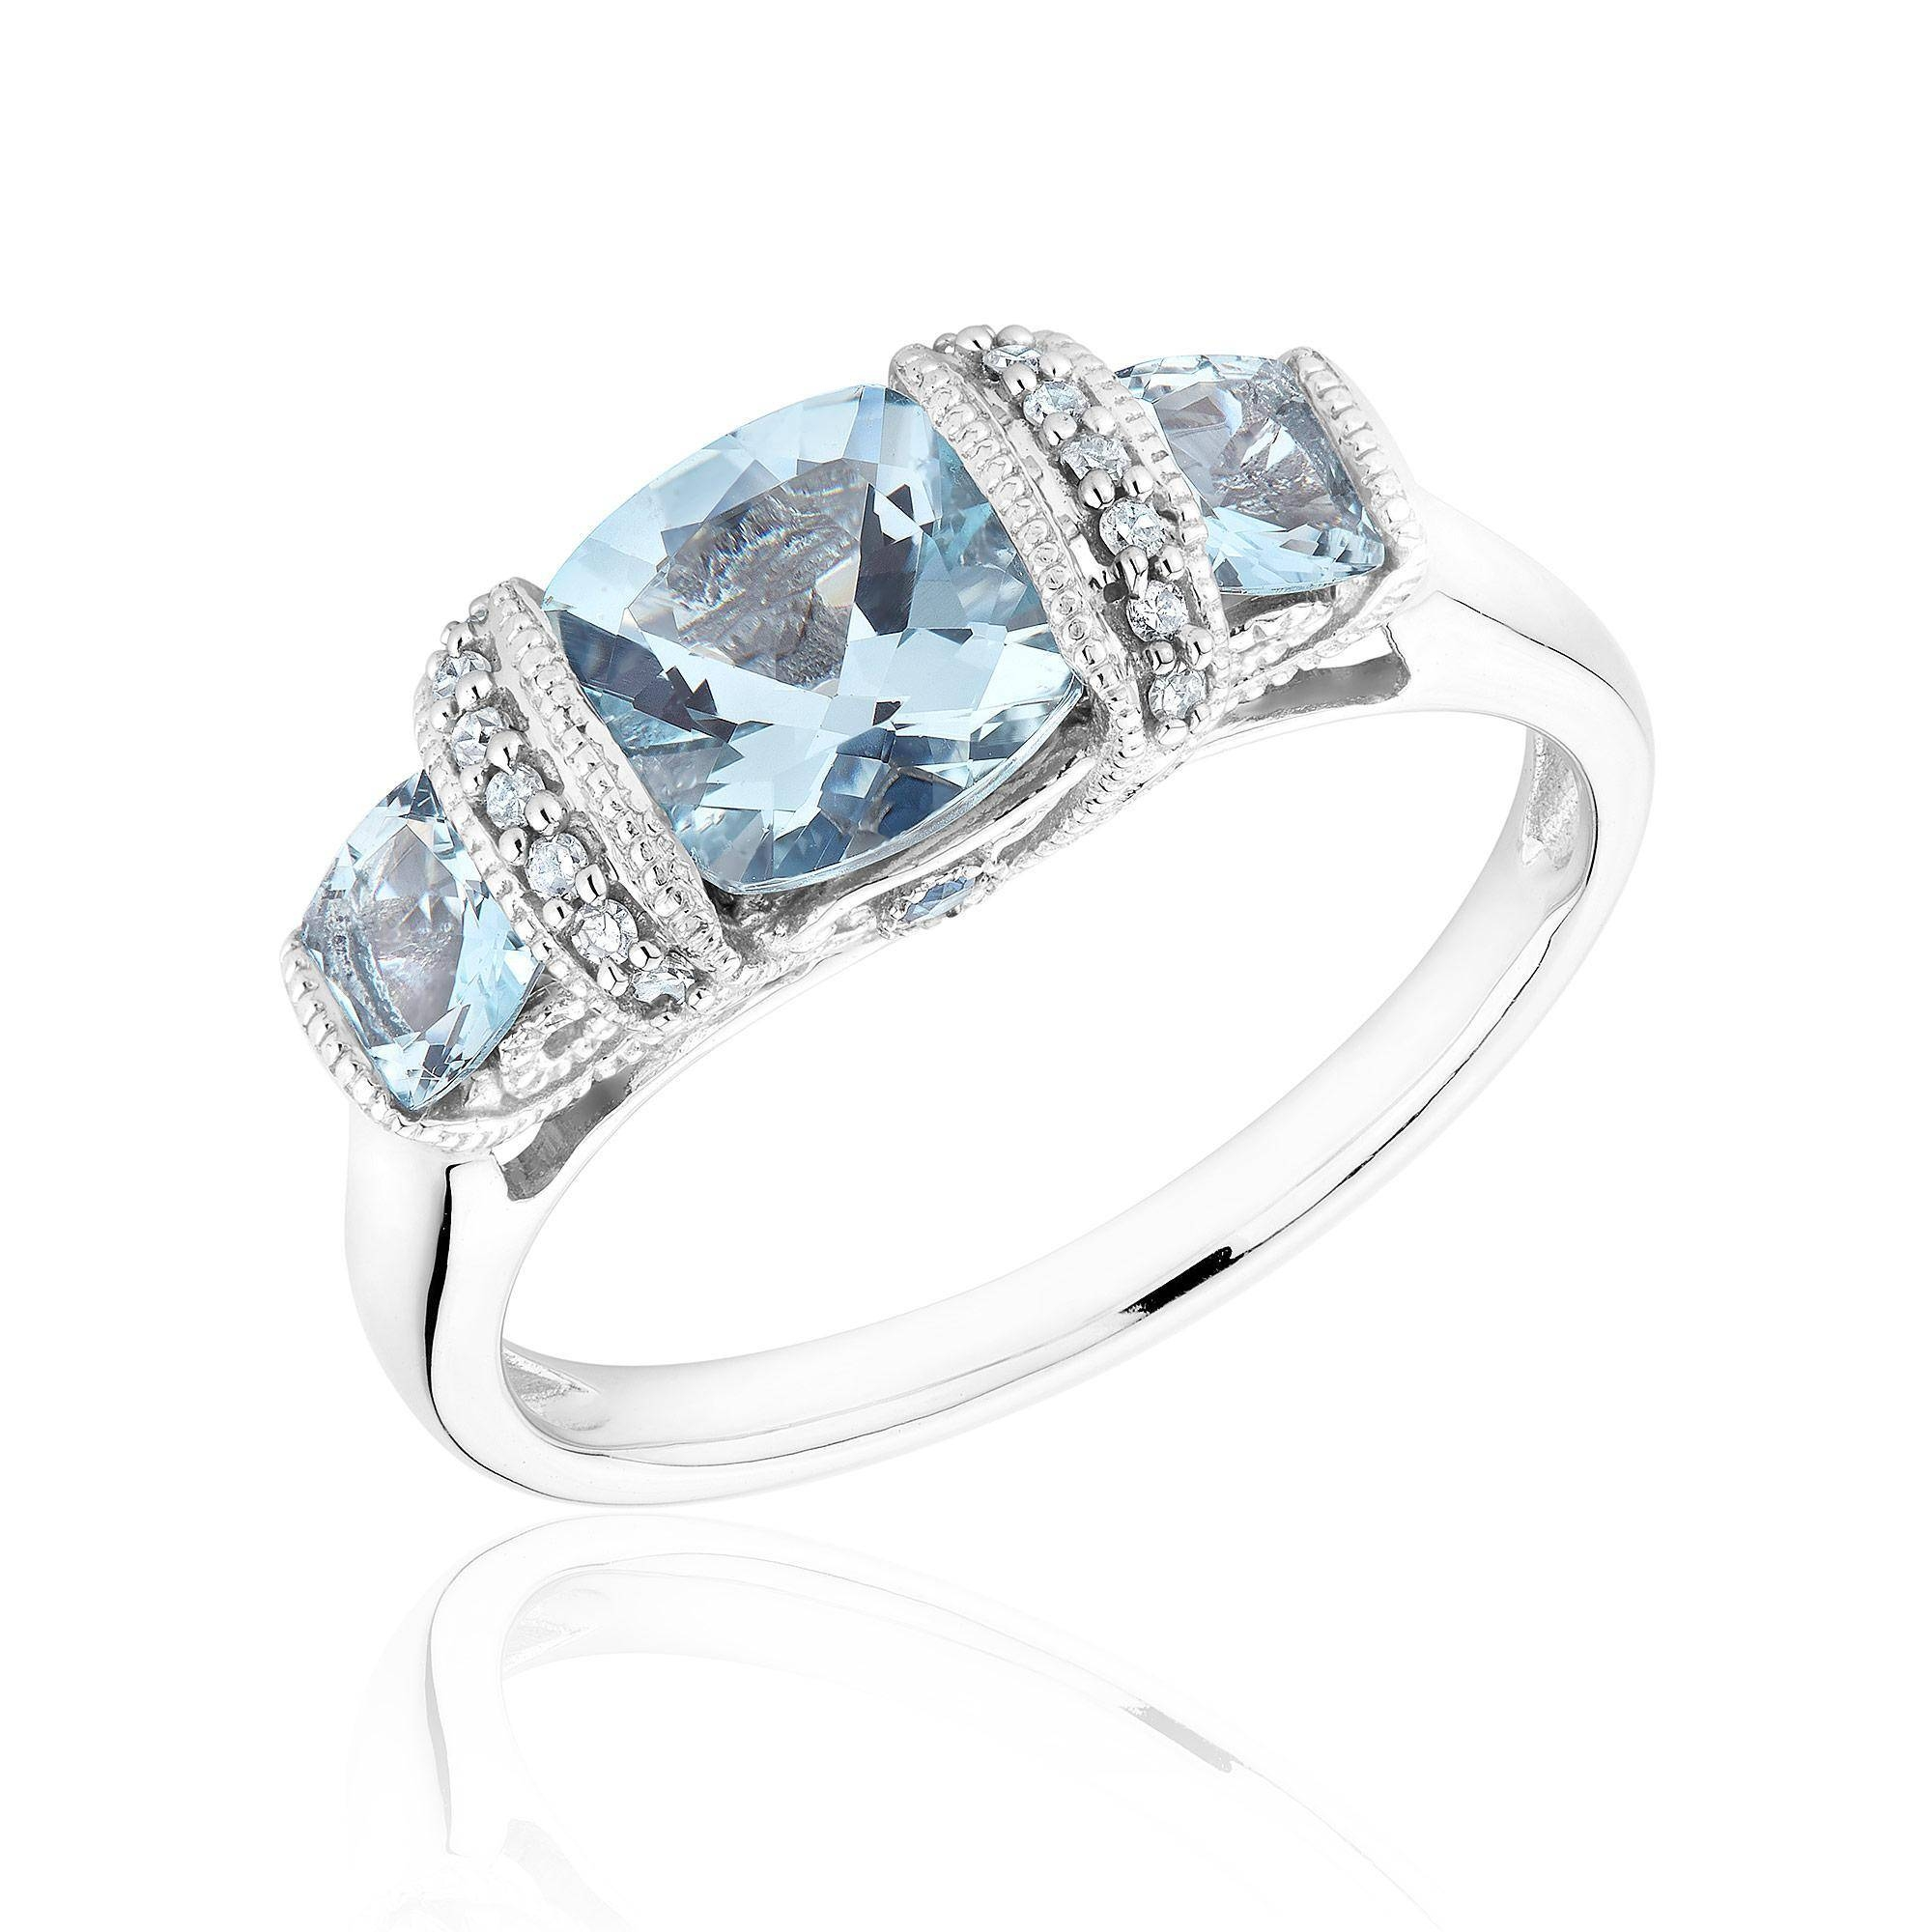 Aquamarine, Blue Sapphire And Diamond Three Stone Ring 1/20Ctw Within Diamond Aquamarine Engagement Rings (Gallery 3 of 15)